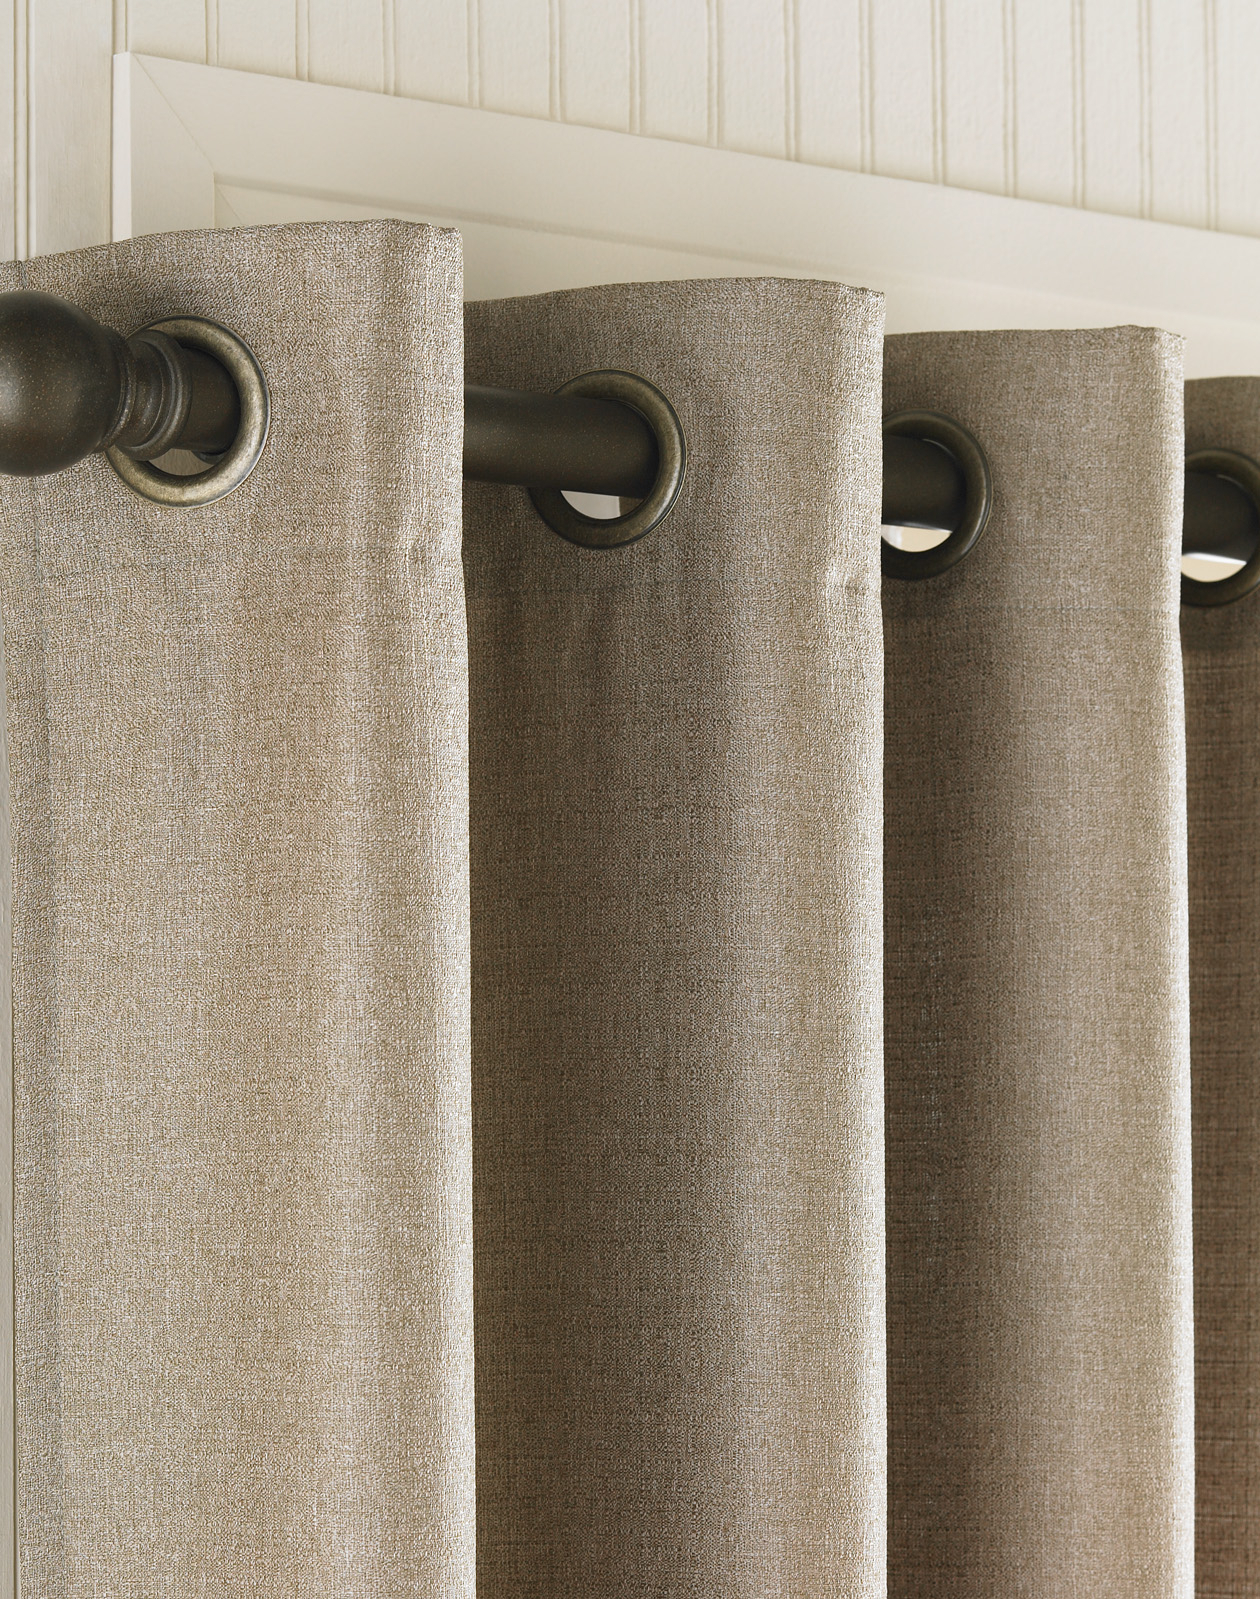 Monterey Textured Lined Grommet Drapery / Curtainworks within Grommet Curtain Panels (Image 15 of 20)